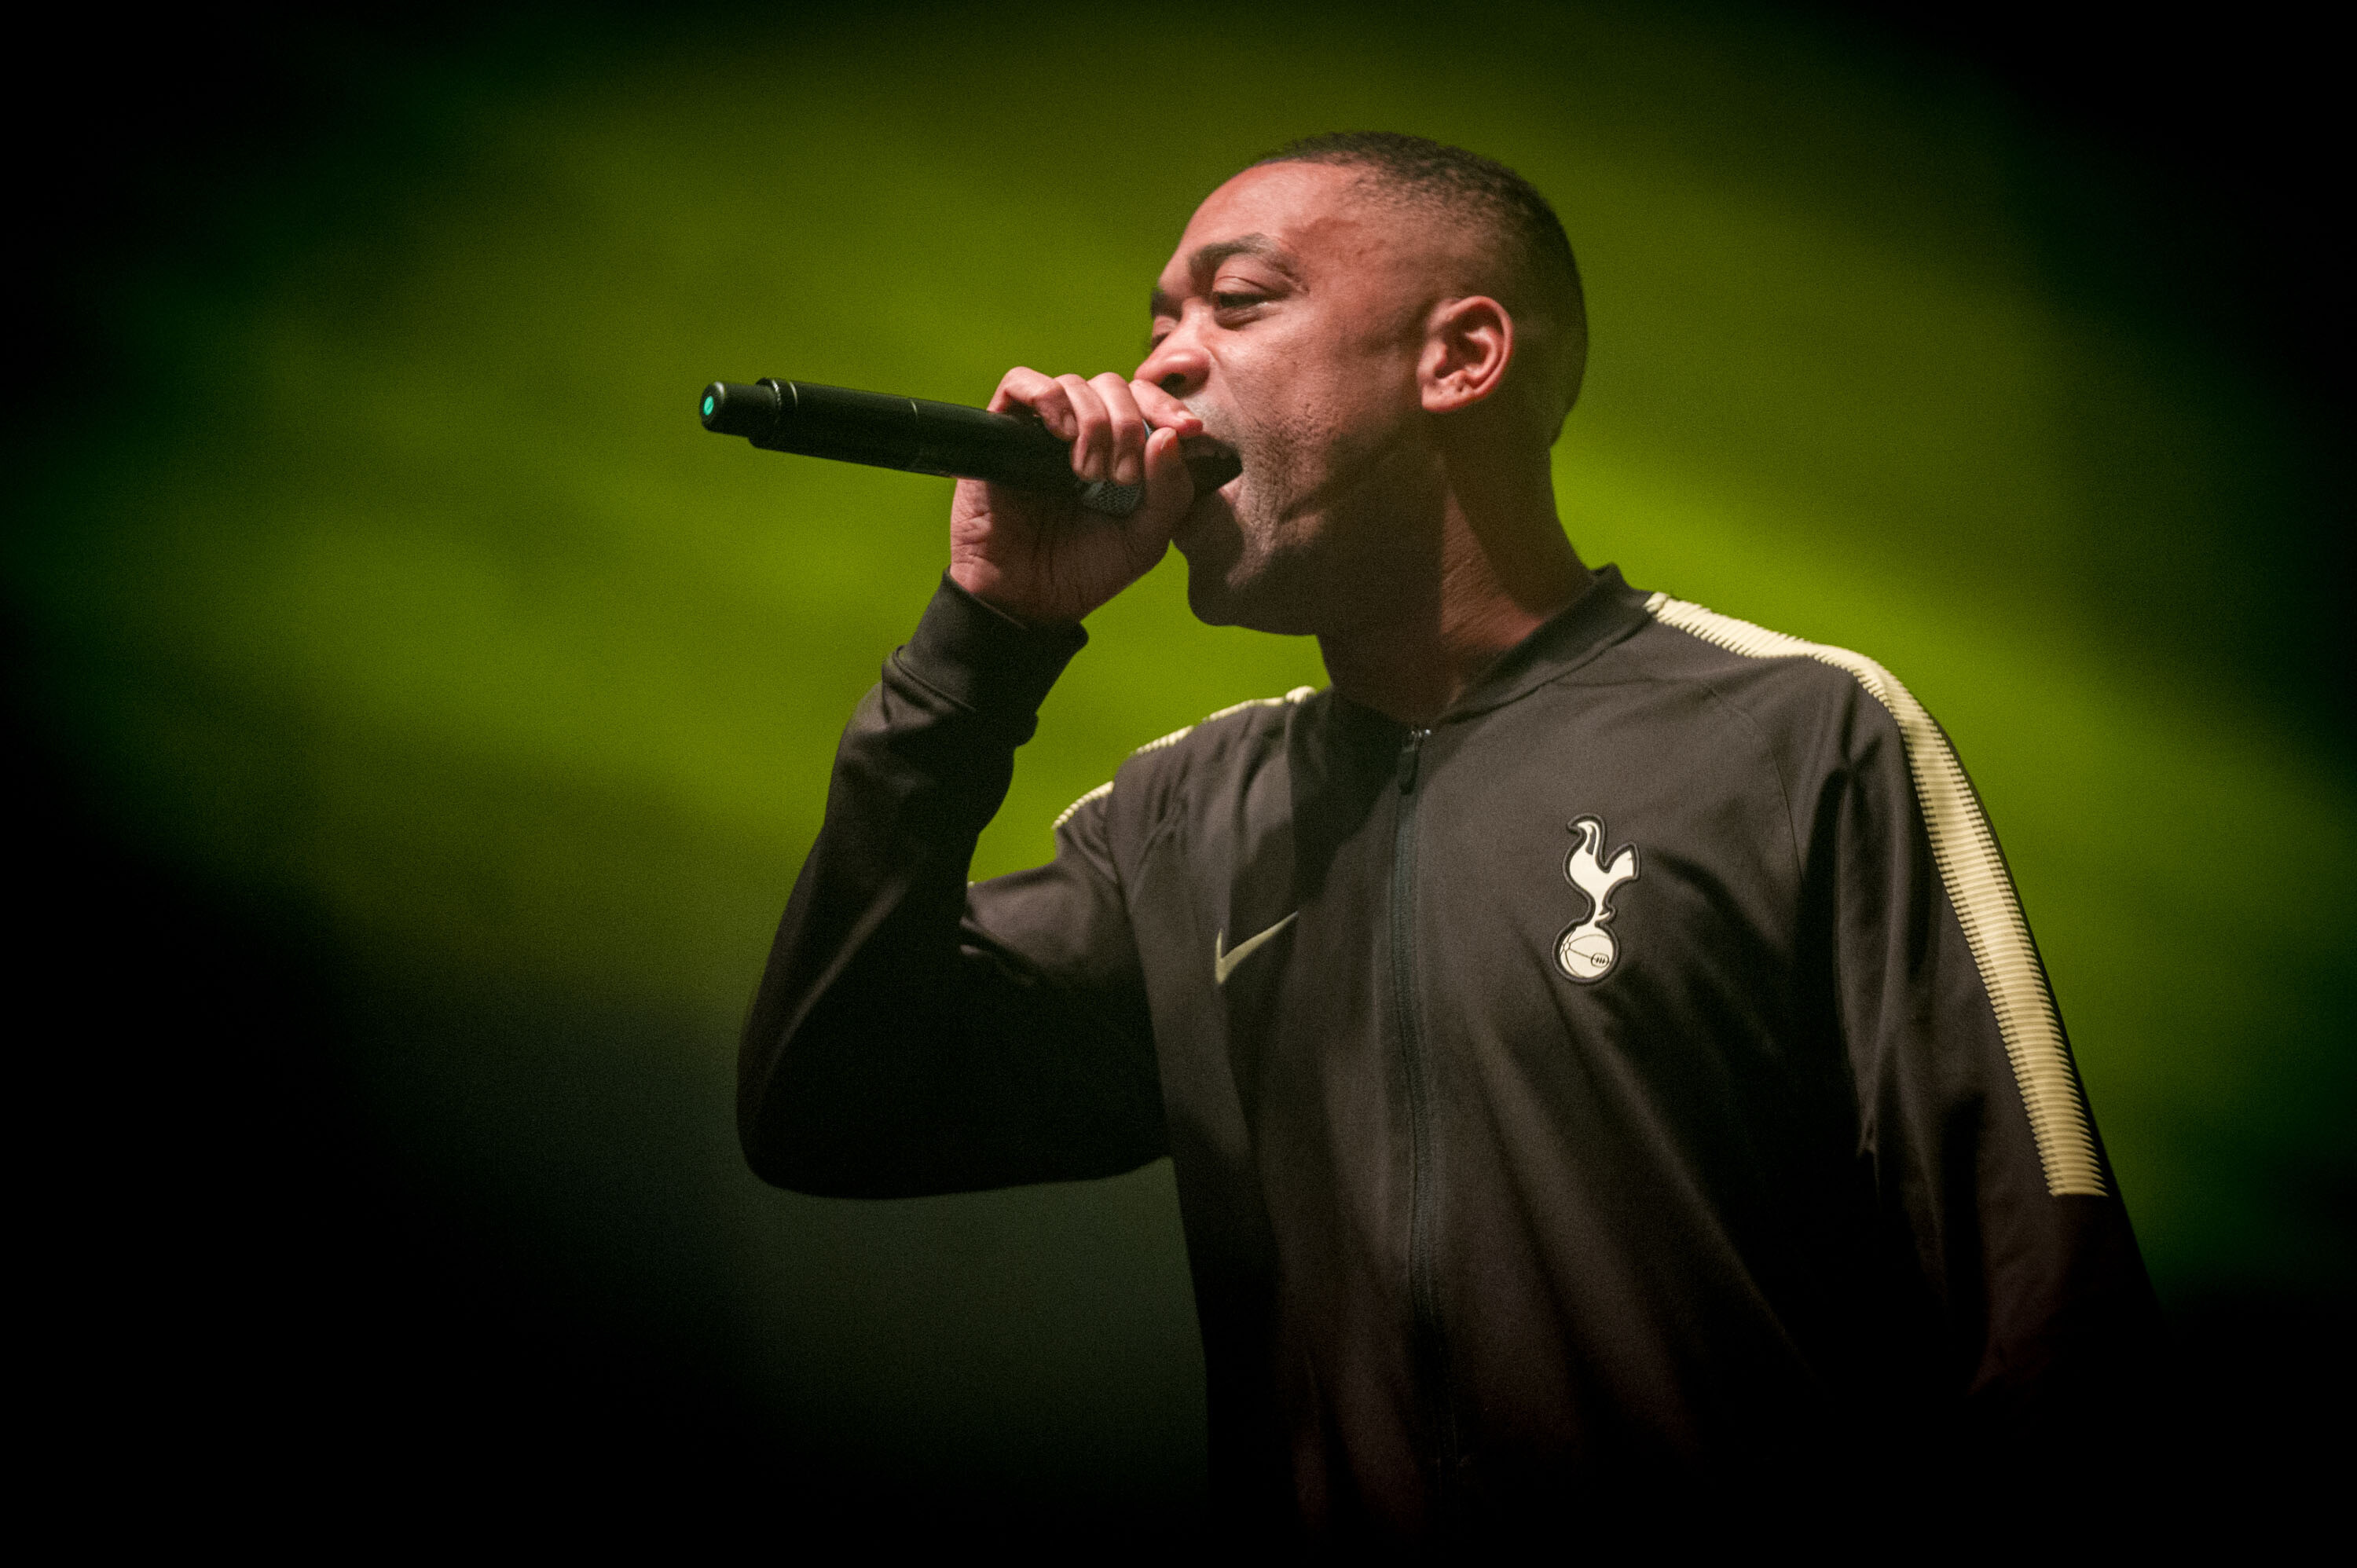 British rapper Wiley charged with assault and burglary